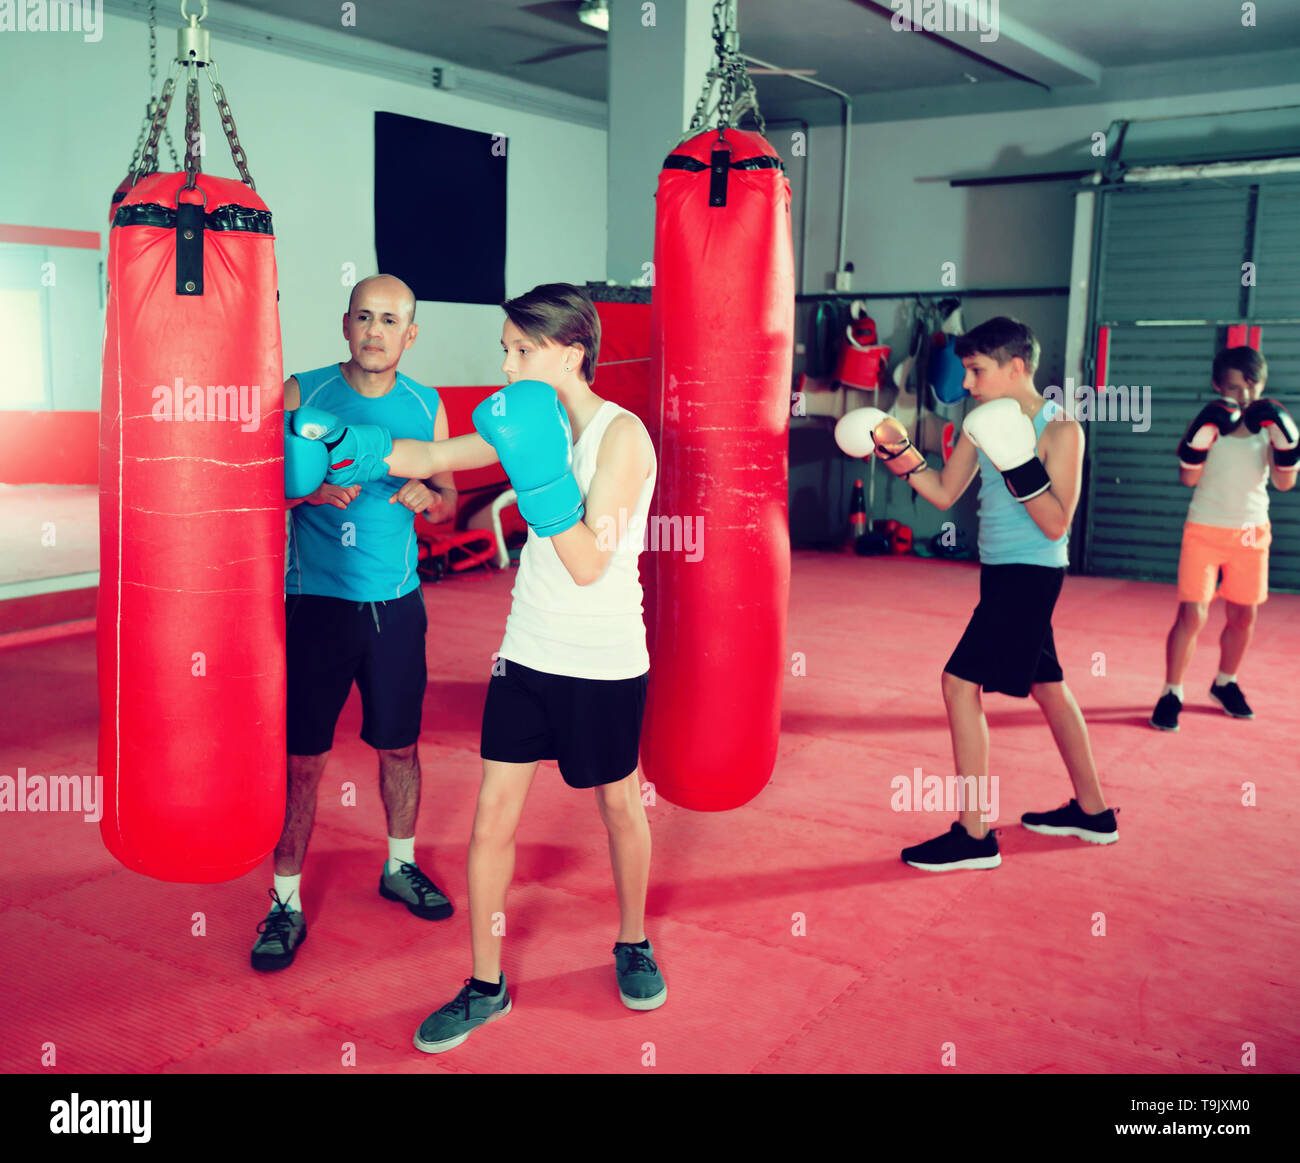 Boxing instructor and glad young children practicing blows on boxing bag - Stock Image